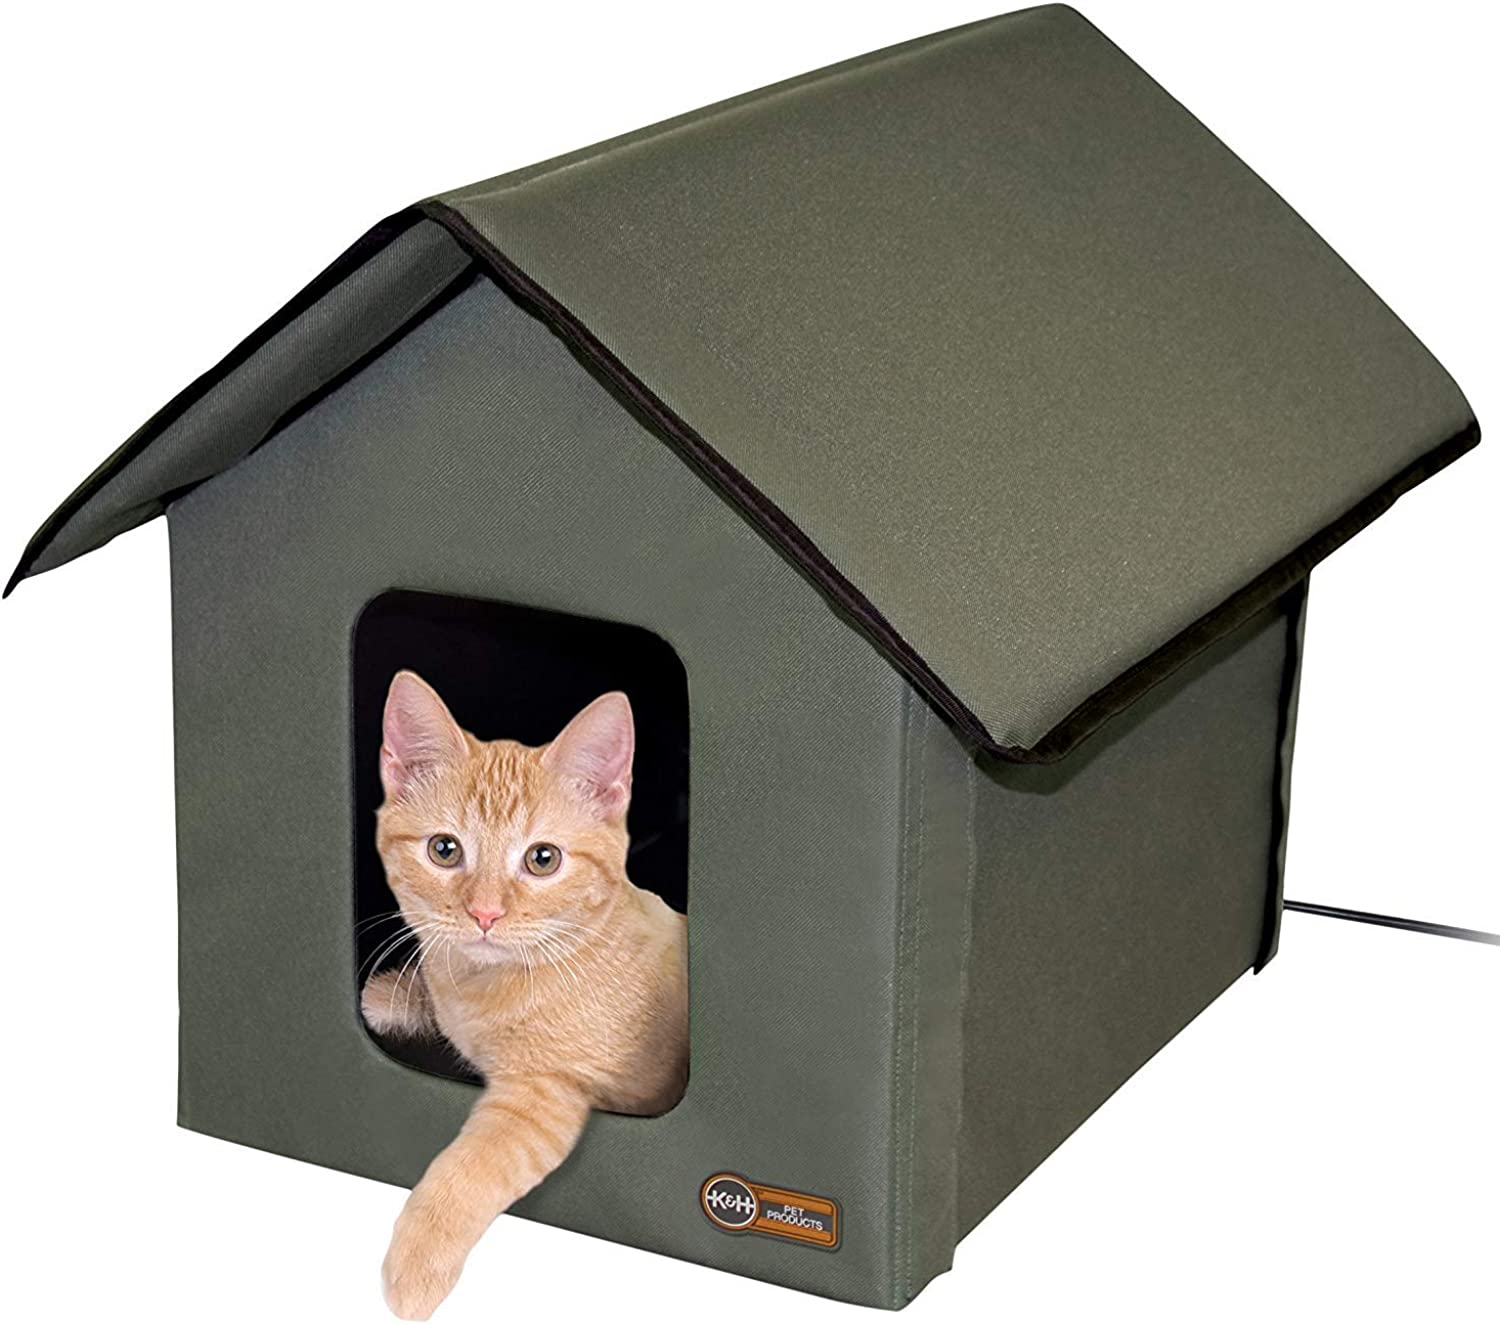 K&H Pet Products Outdoor Kitty House Cat Shelter (Heated or Unheated)